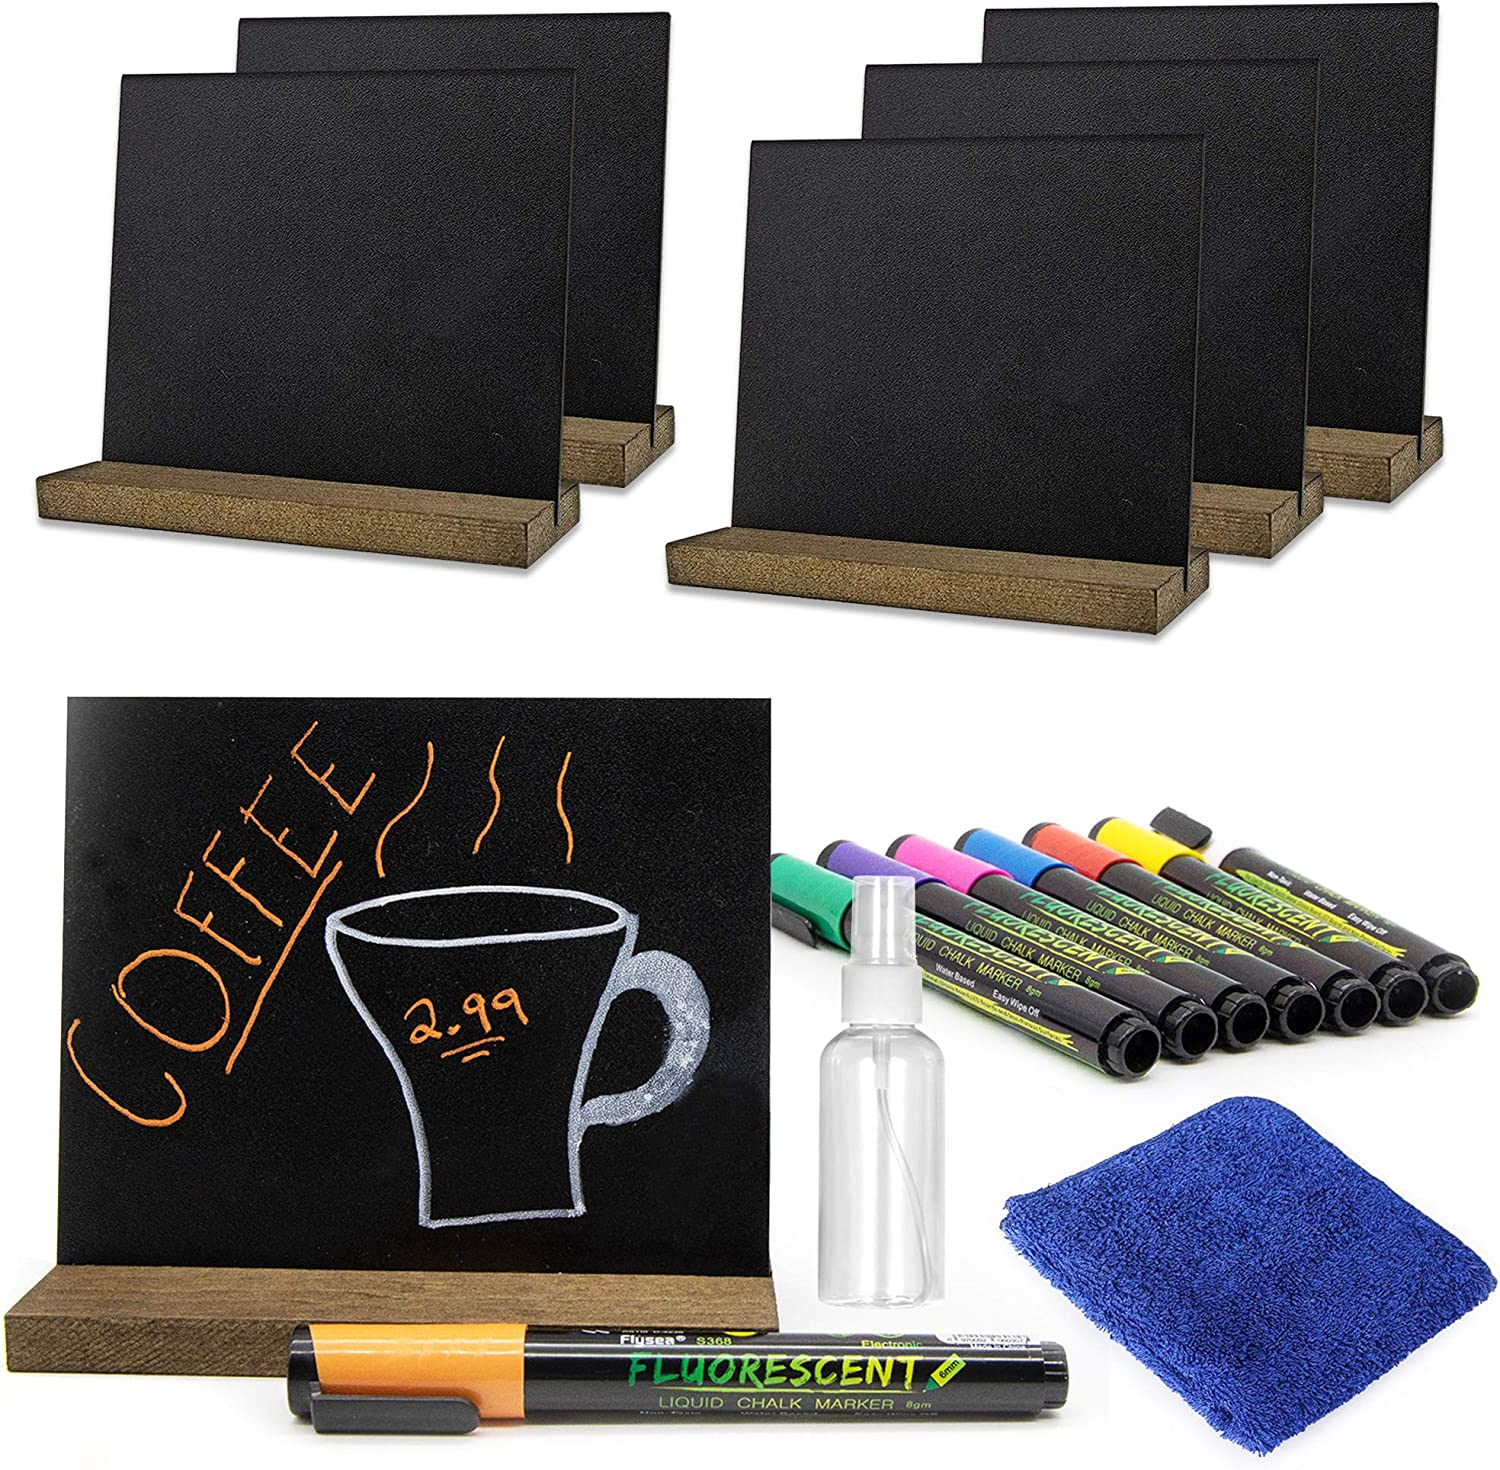 Deluxe Mini Chalkboard Set - Complete with 6 Small Chalkboards with Stand, 8 Liquid Neon Chalk, Microfiber Towel & Spray Bottle - Mini Chalk Board Great for Events - Detachable Chalkboard Sign Display